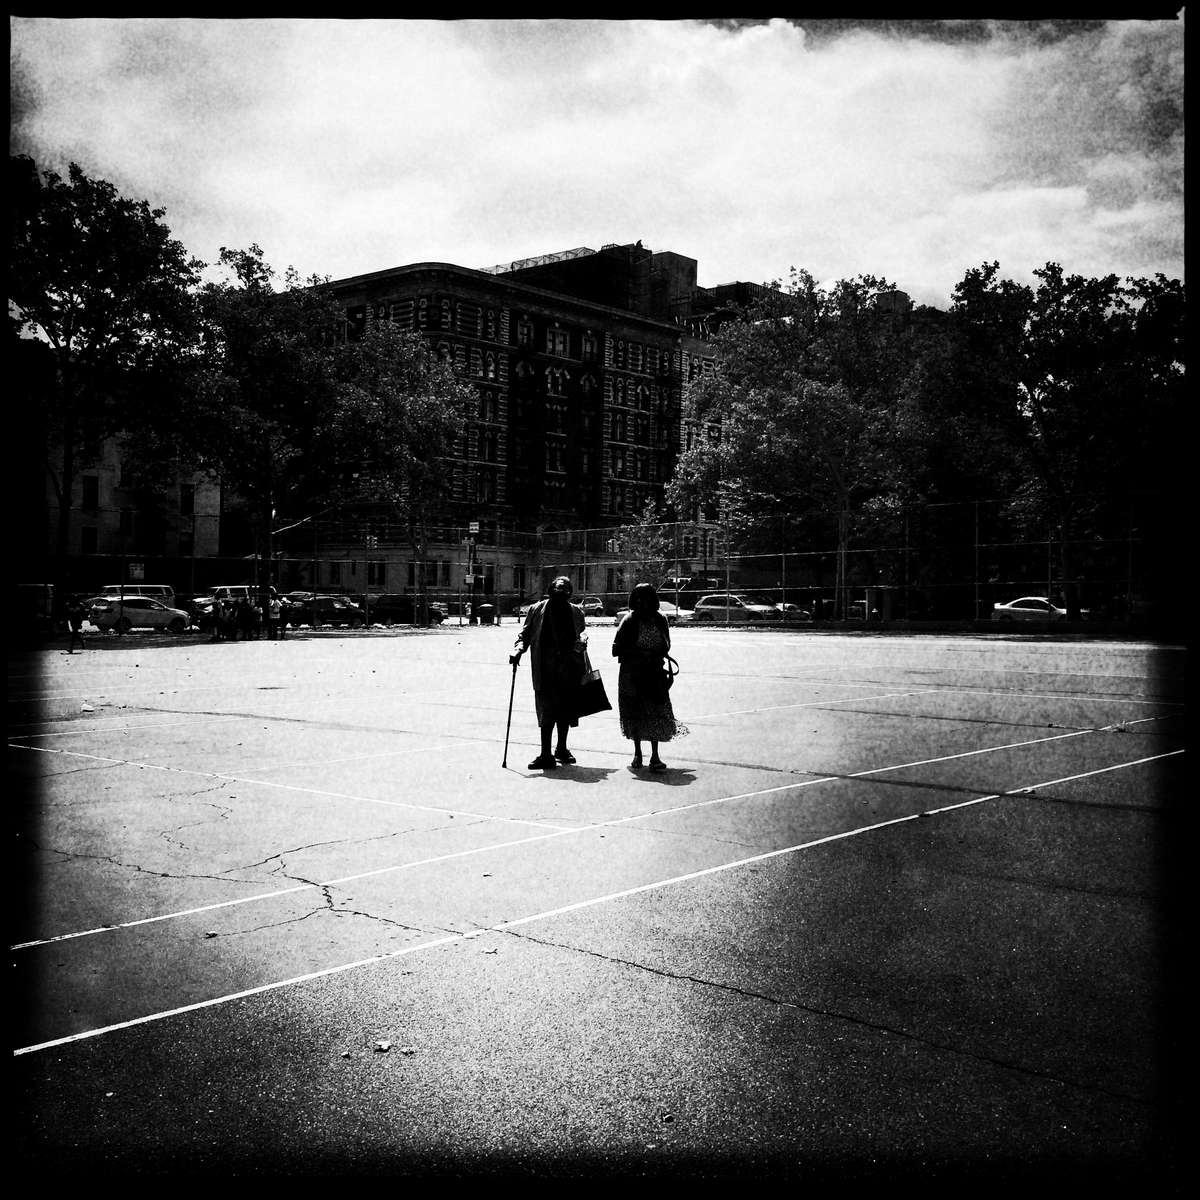 Old ladies walk through a playground in West Harlem in this late hazy morning, as the area is dramatically changing, whether it is redevelopment or gentrification. #old_ladies #women #west_harlem #harlem #playground